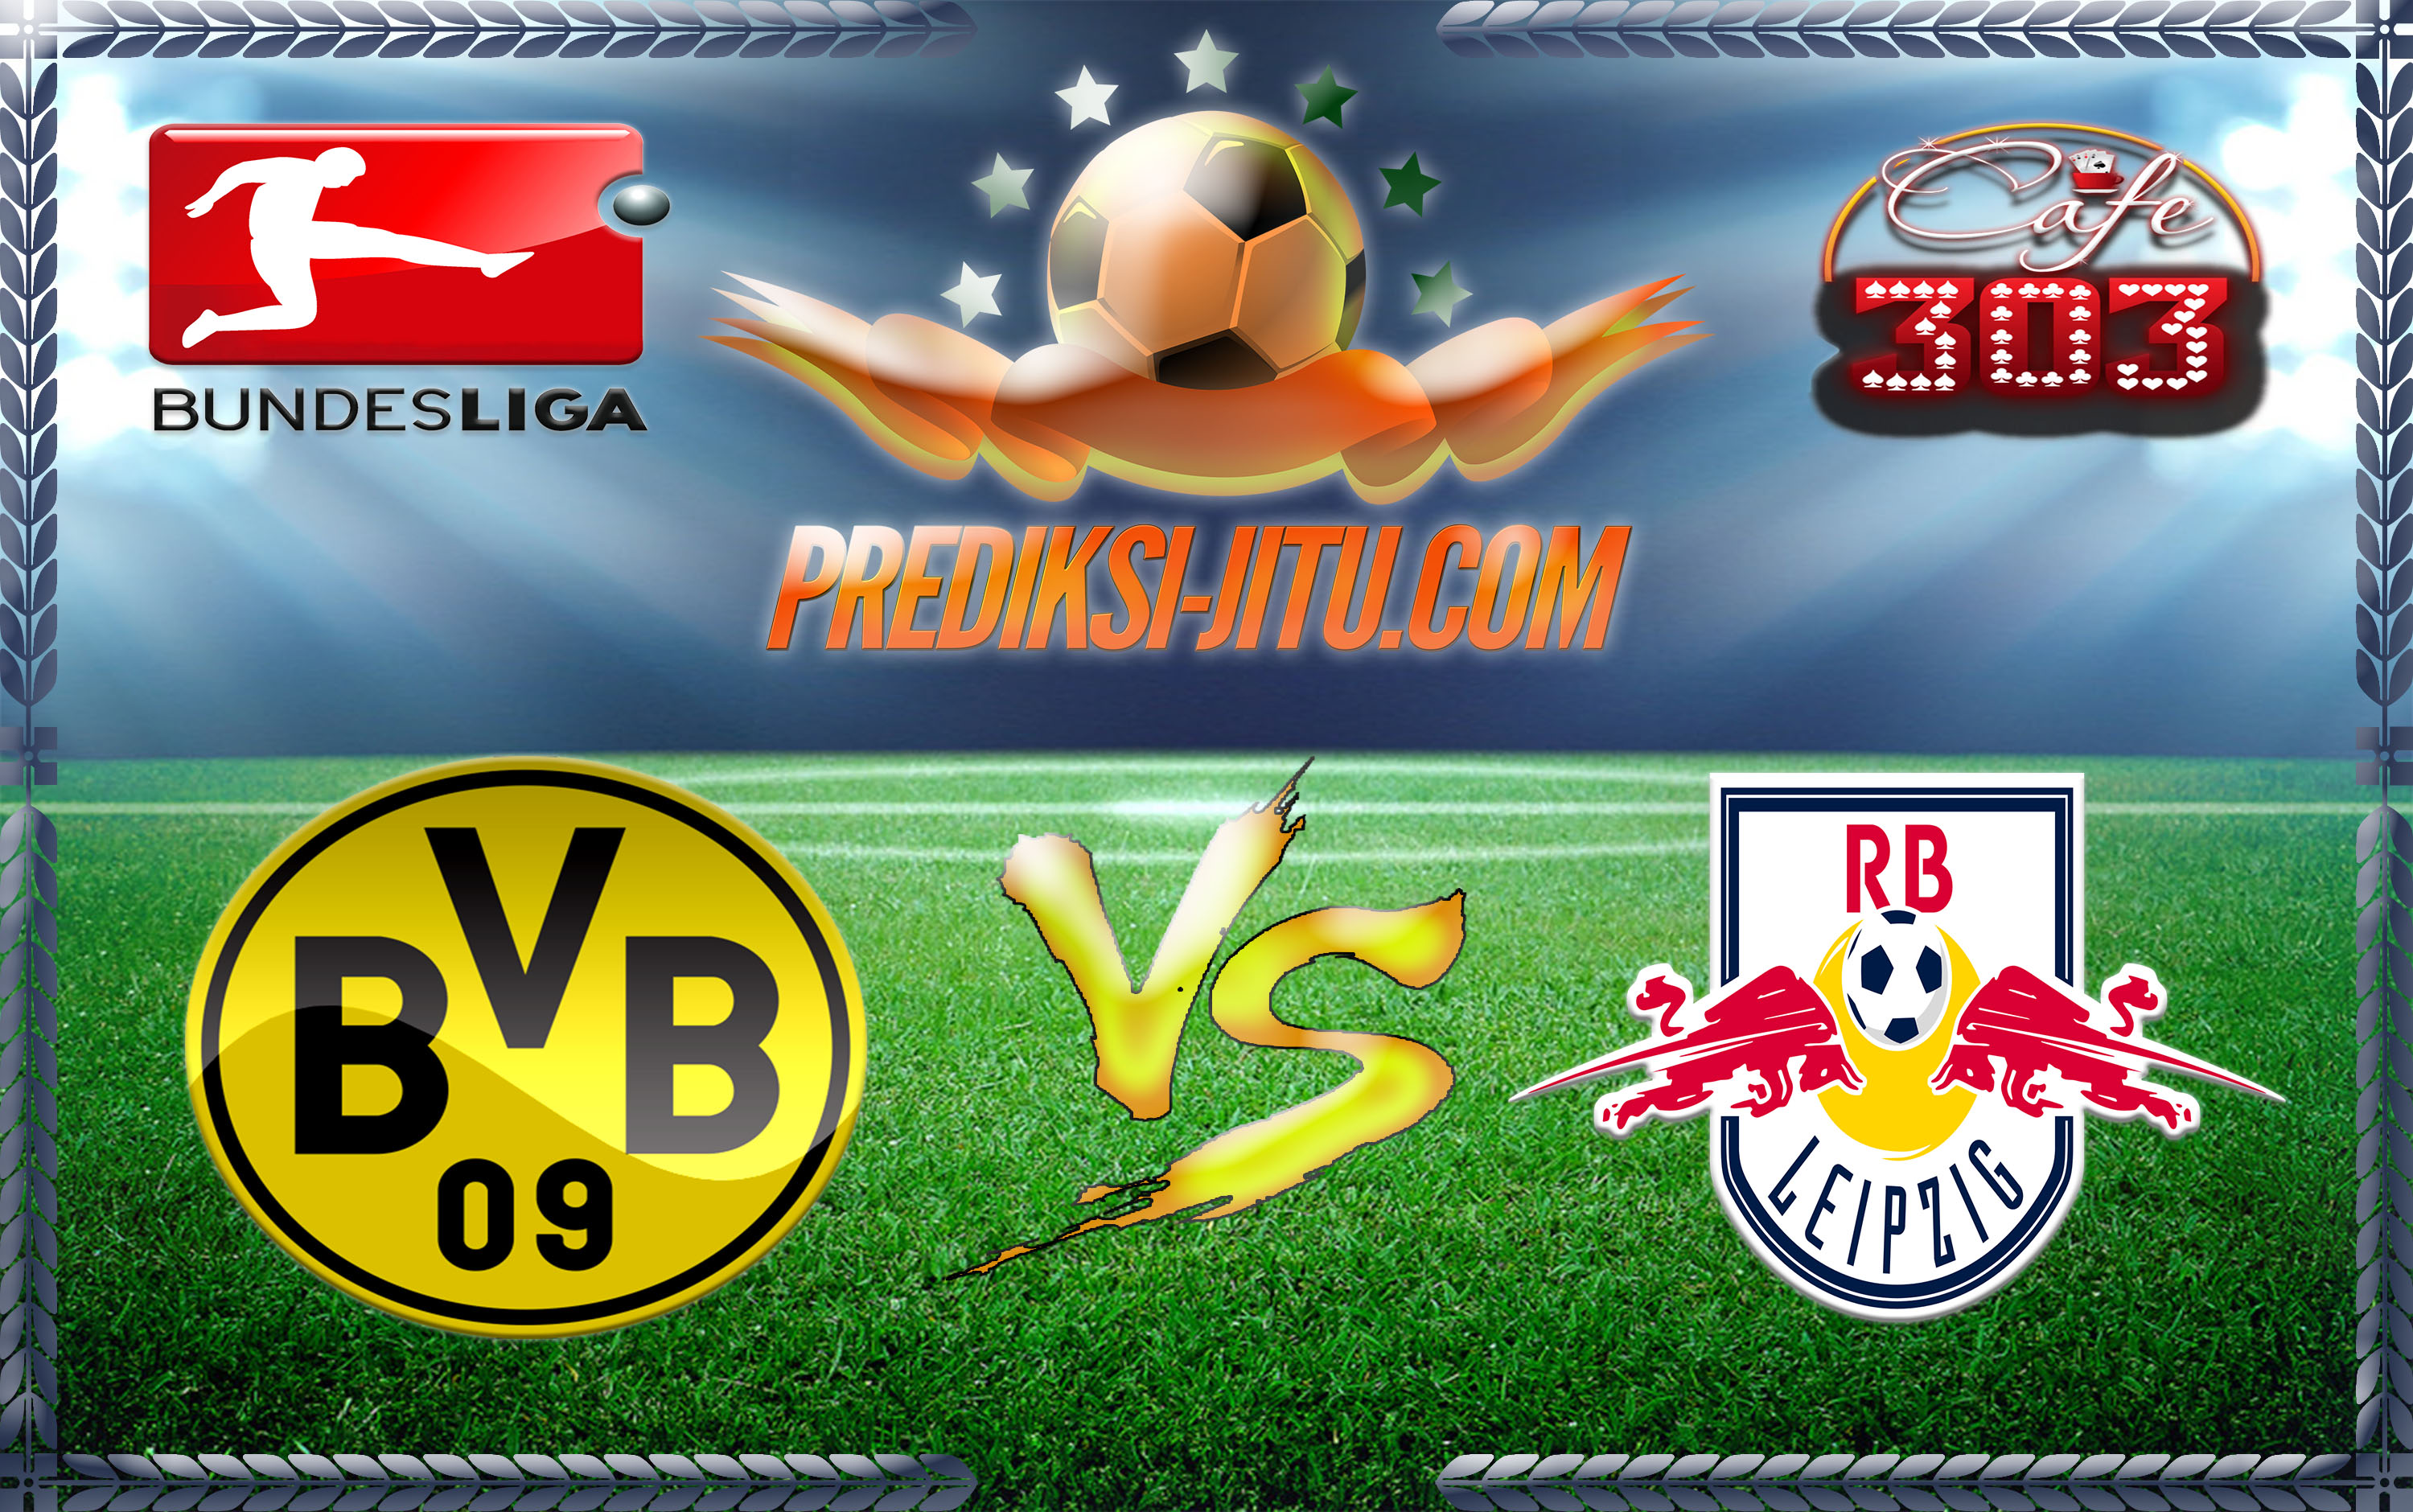 Prediksi Skor Borrusia Dortmund Vs RB Leipzig 14 October 2017